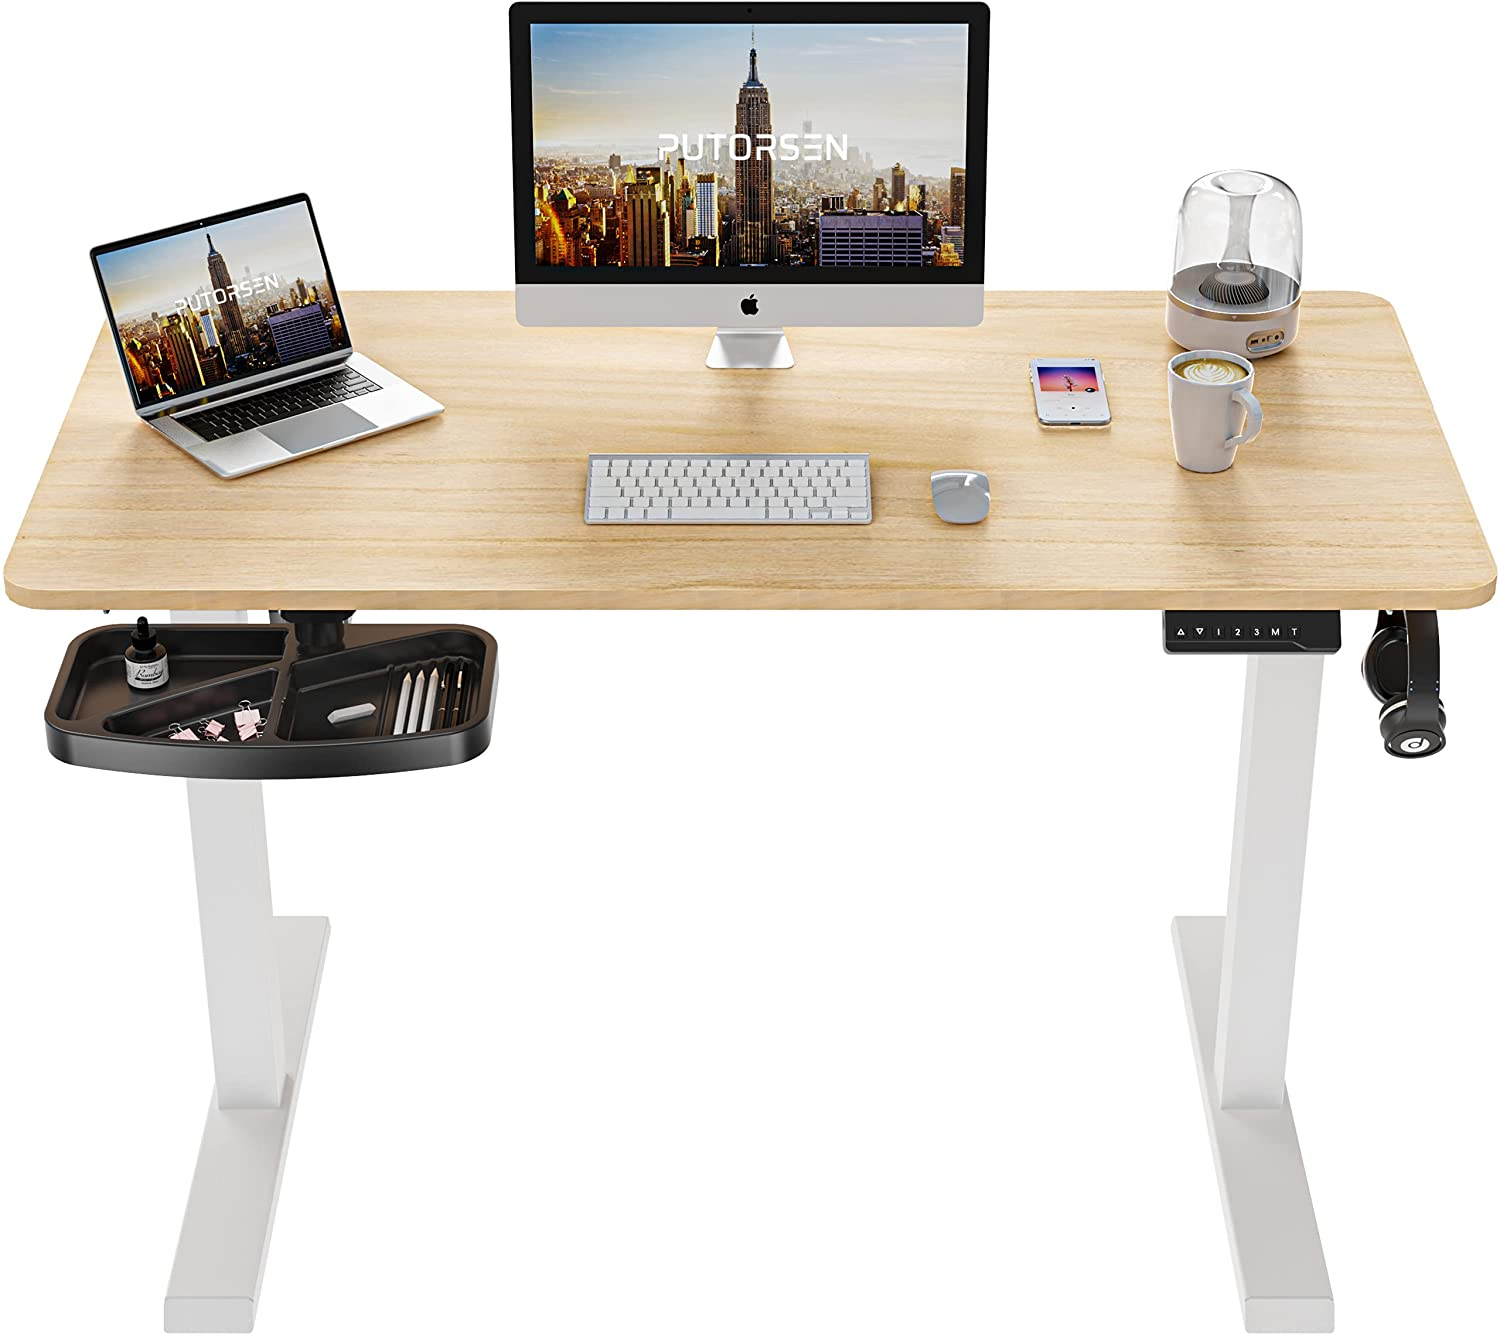 (US EXCLUSIVE) PUTORSEN Electric Height Adjustable Standing Desk, 48 x 24 Inches Sit Stand Home Office Table with Splice Board, White Frame/Cyan Chestnut Top Stand Up Computer Desk with Memory Preset Controller